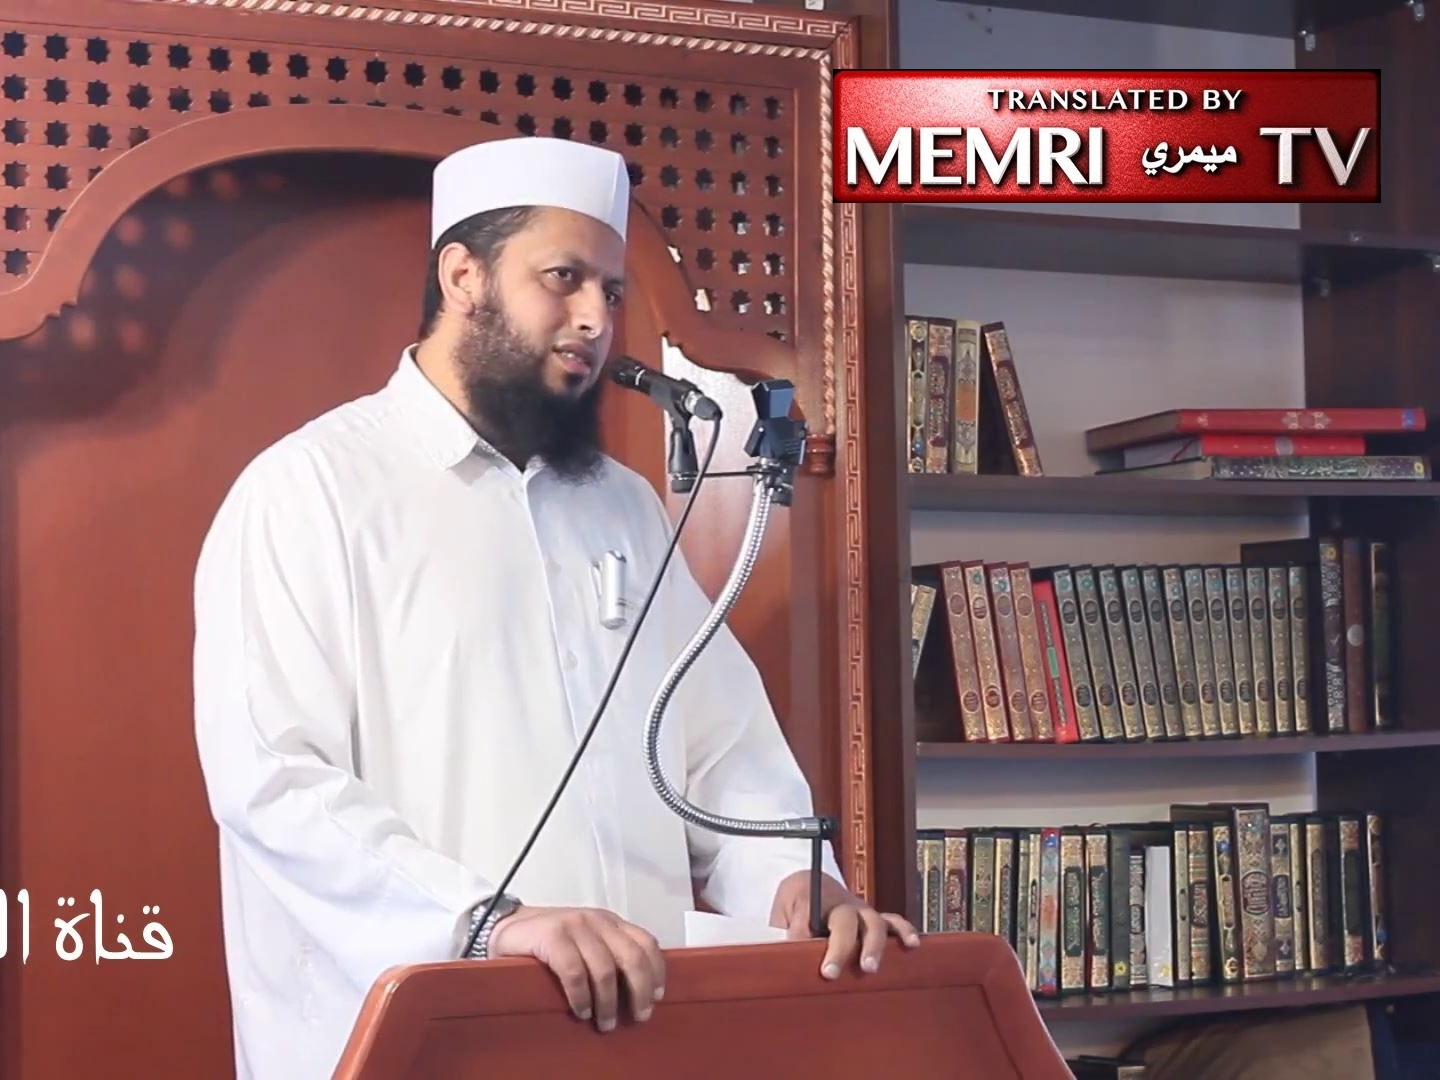 Montreal Friday Sermon by Sheikh Wael Al-Ghitawi: Jews Are Khazar, Slayers of the Prophets, and Have No Historical Right to Palestine (Archival)